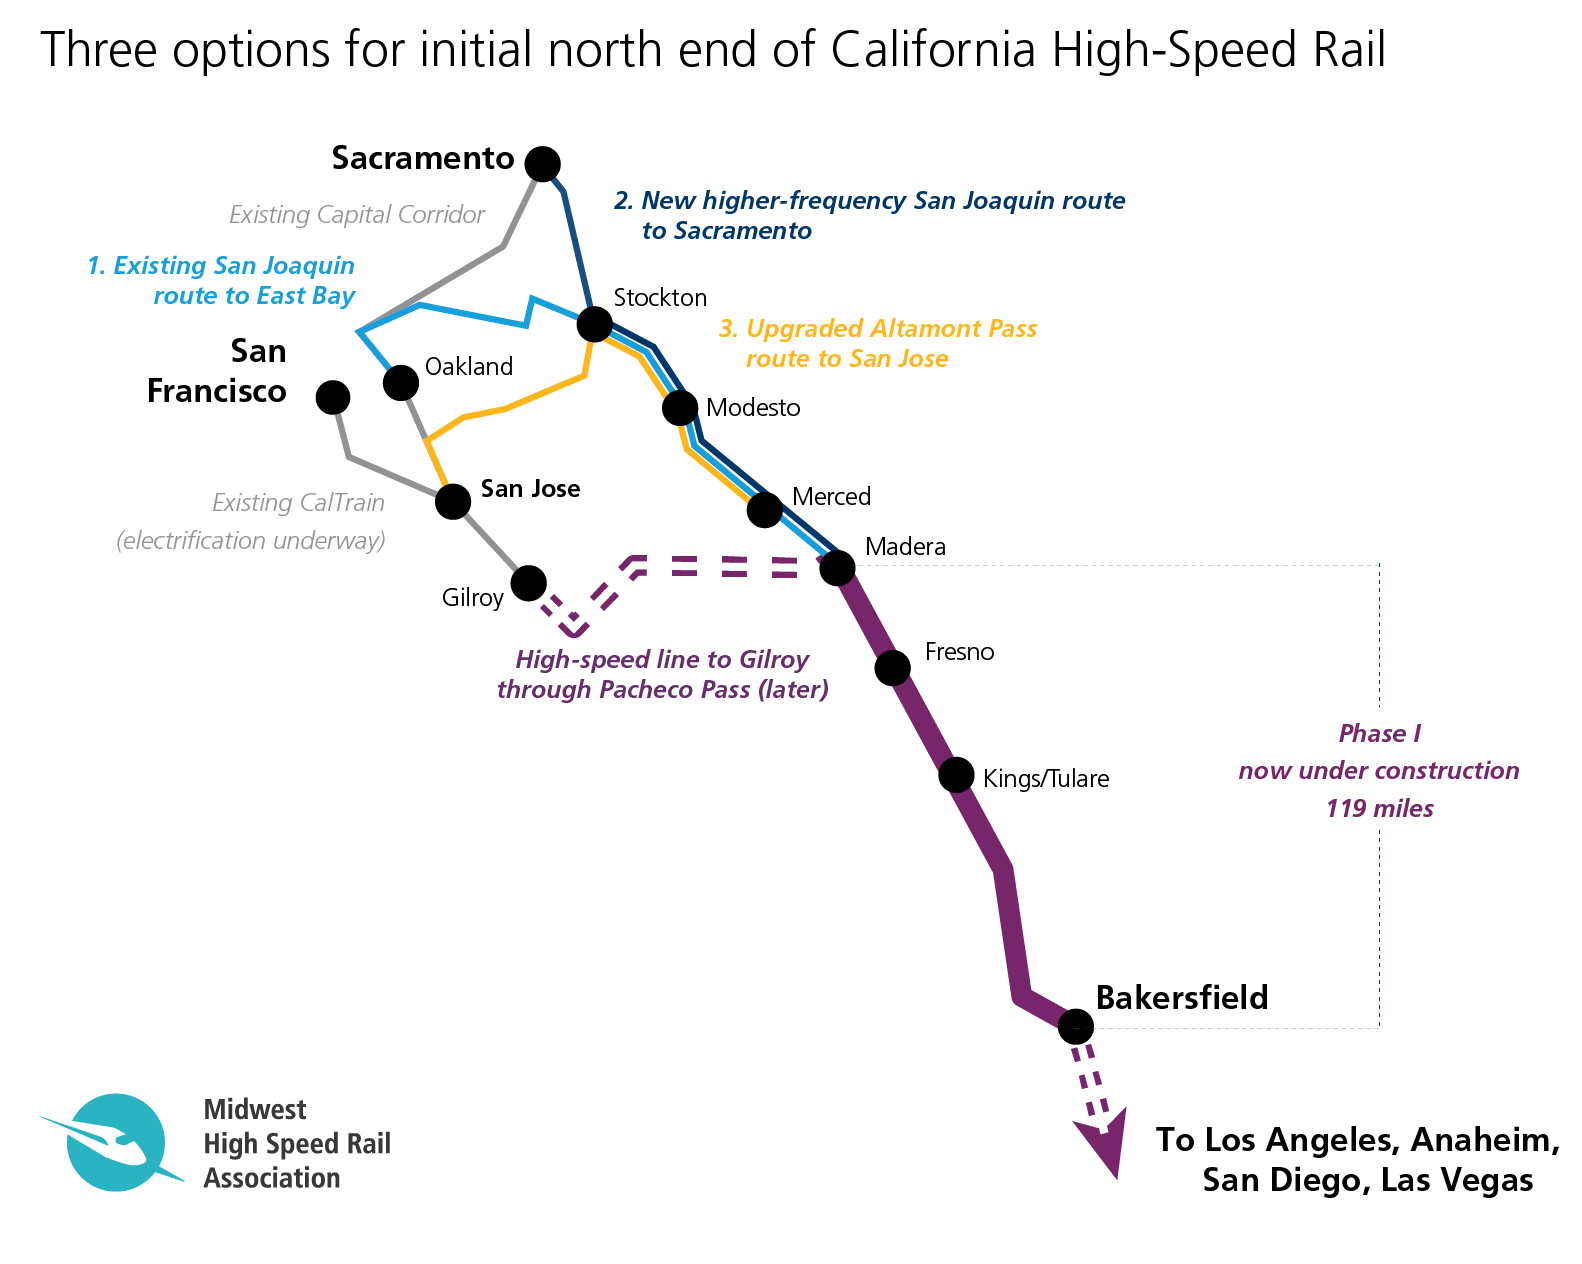 Map Of California High Speed Rail.Does California Have More Options Than It Realizes For First High